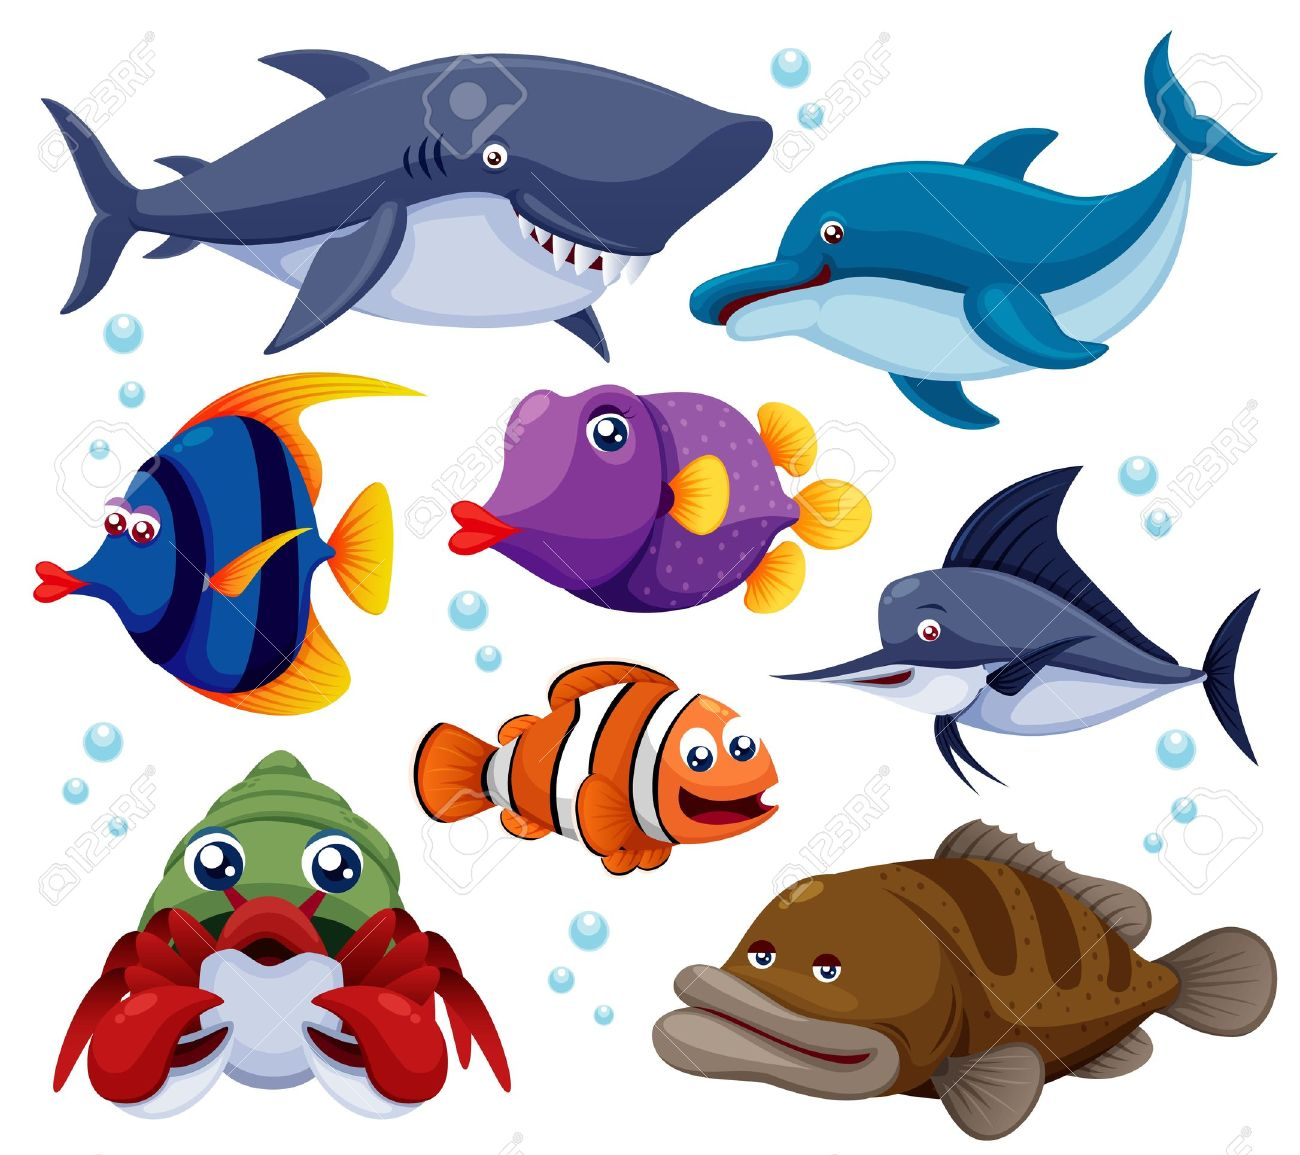 Mann im mond clipart svg transparent stock Fische im meer clipart - ClipartFox svg transparent stock